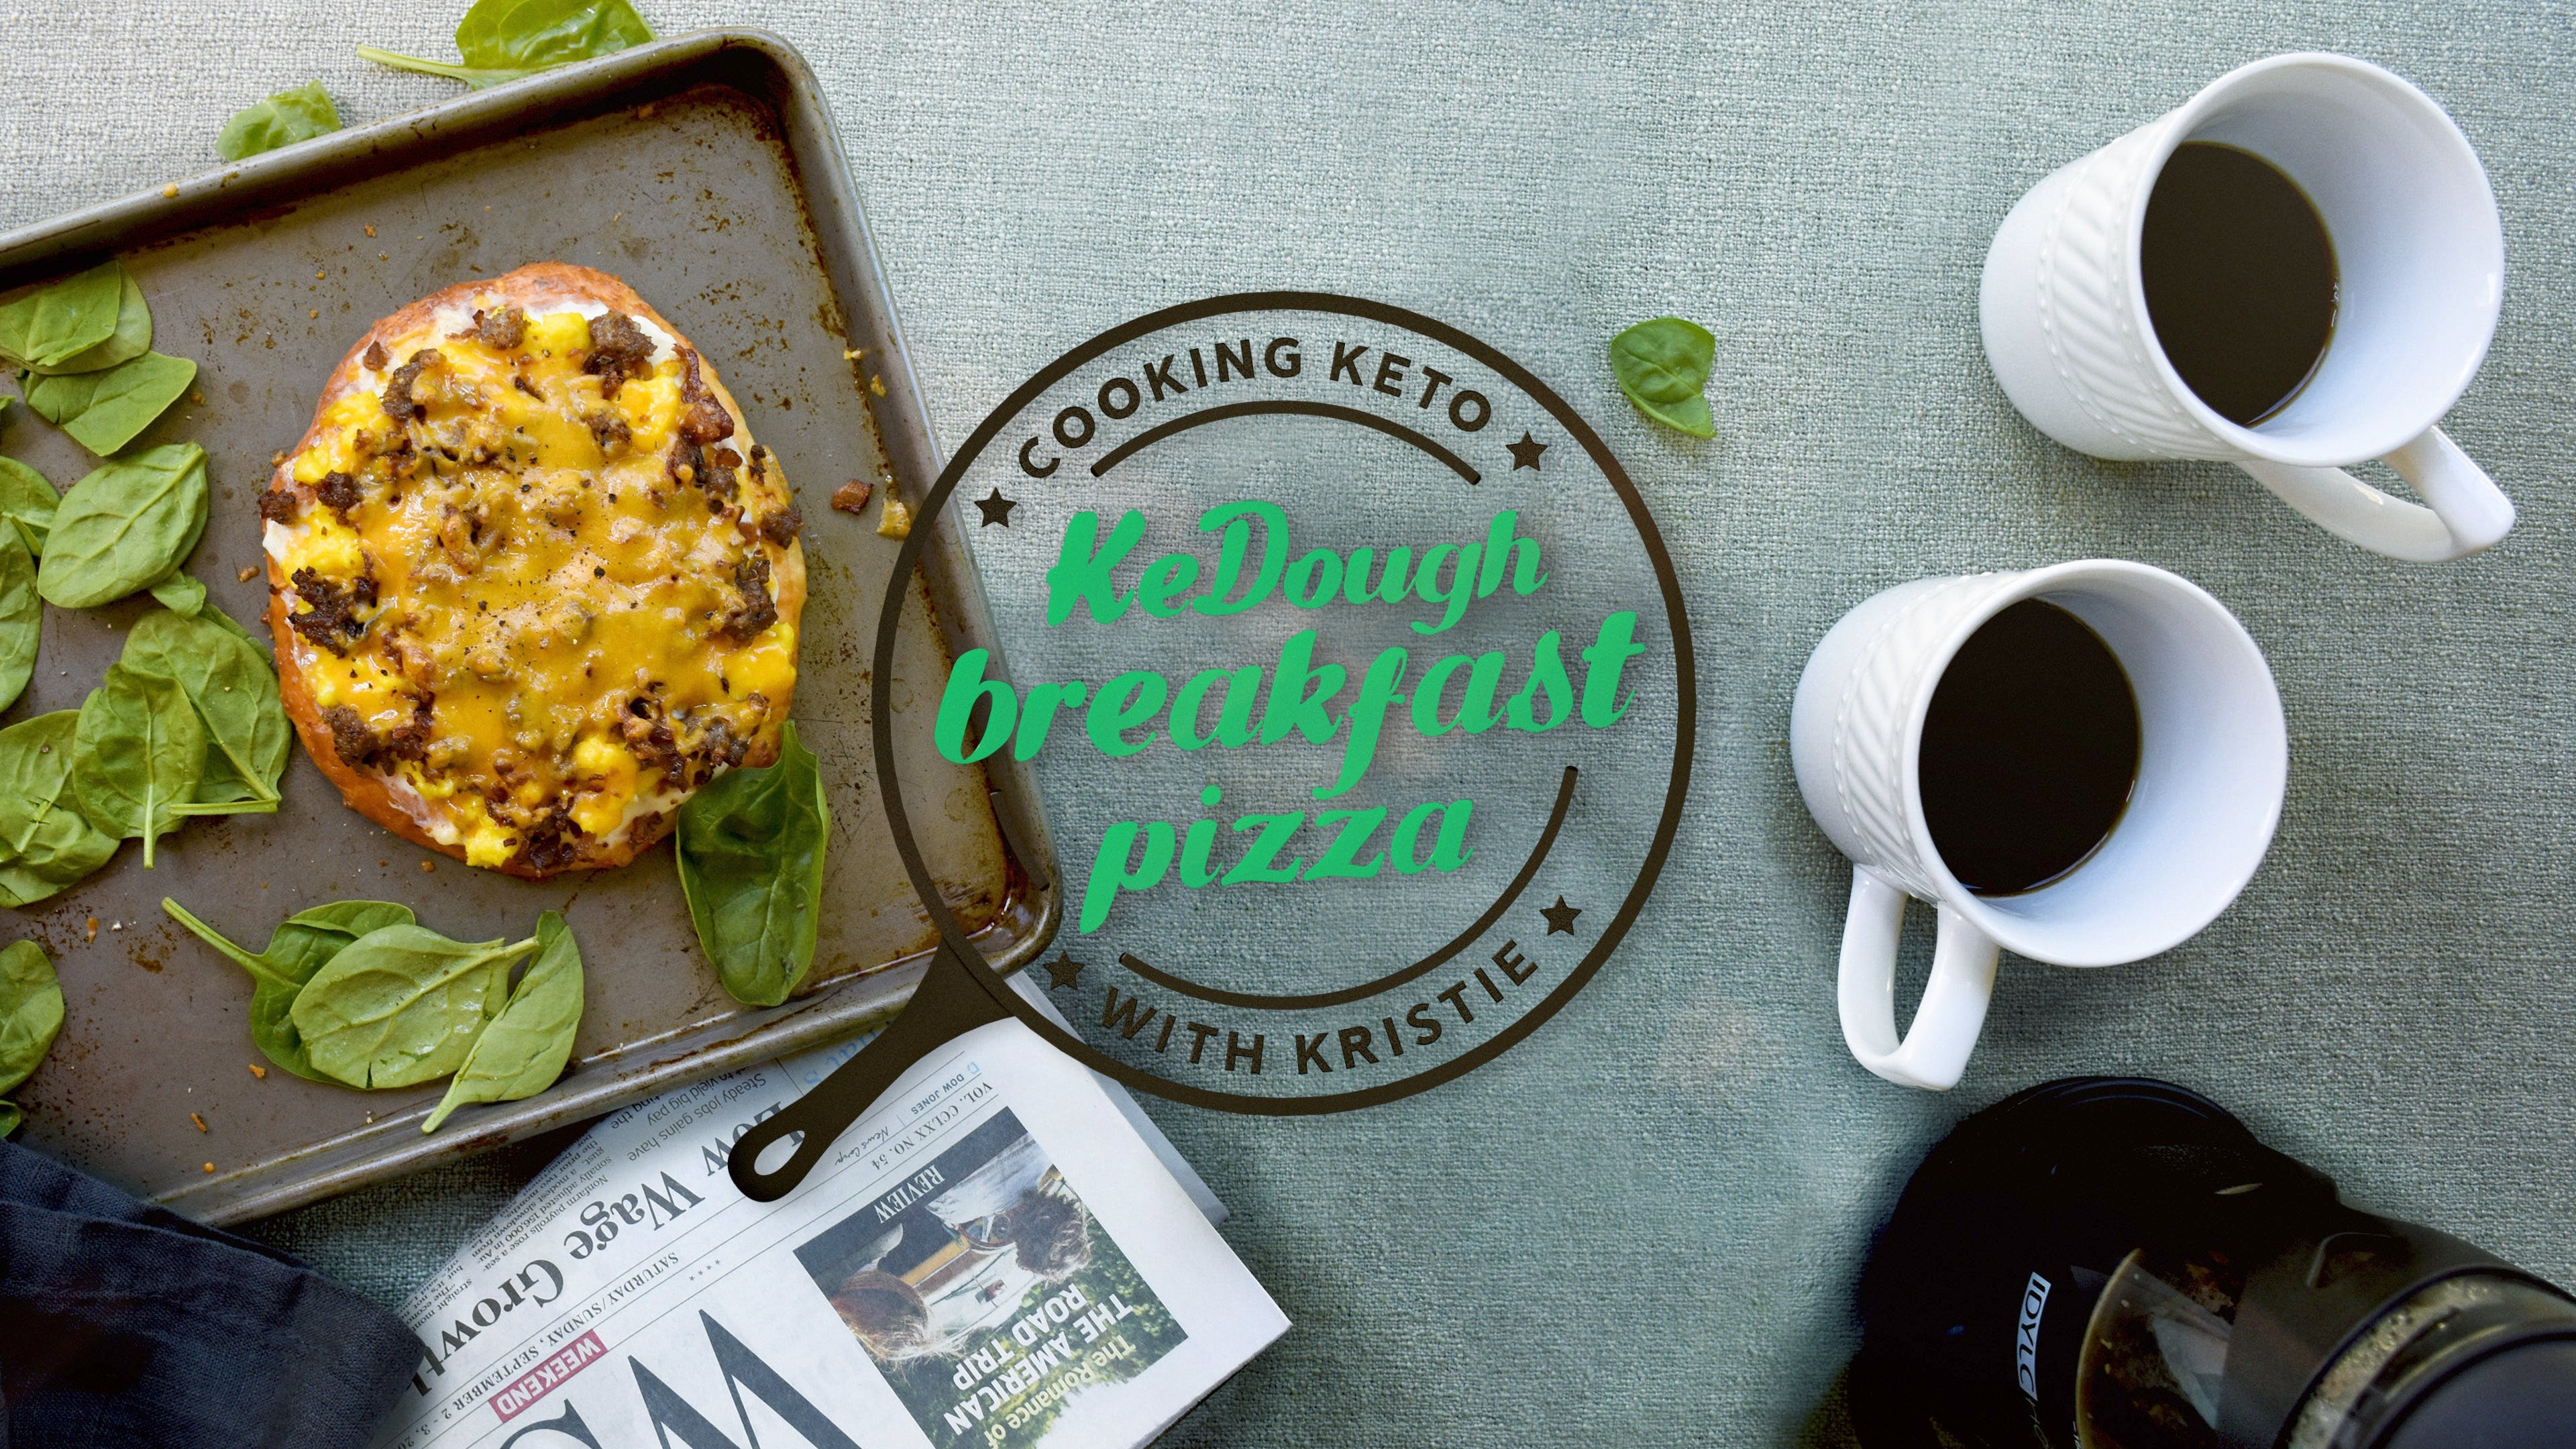 KeDough breakfast pizza